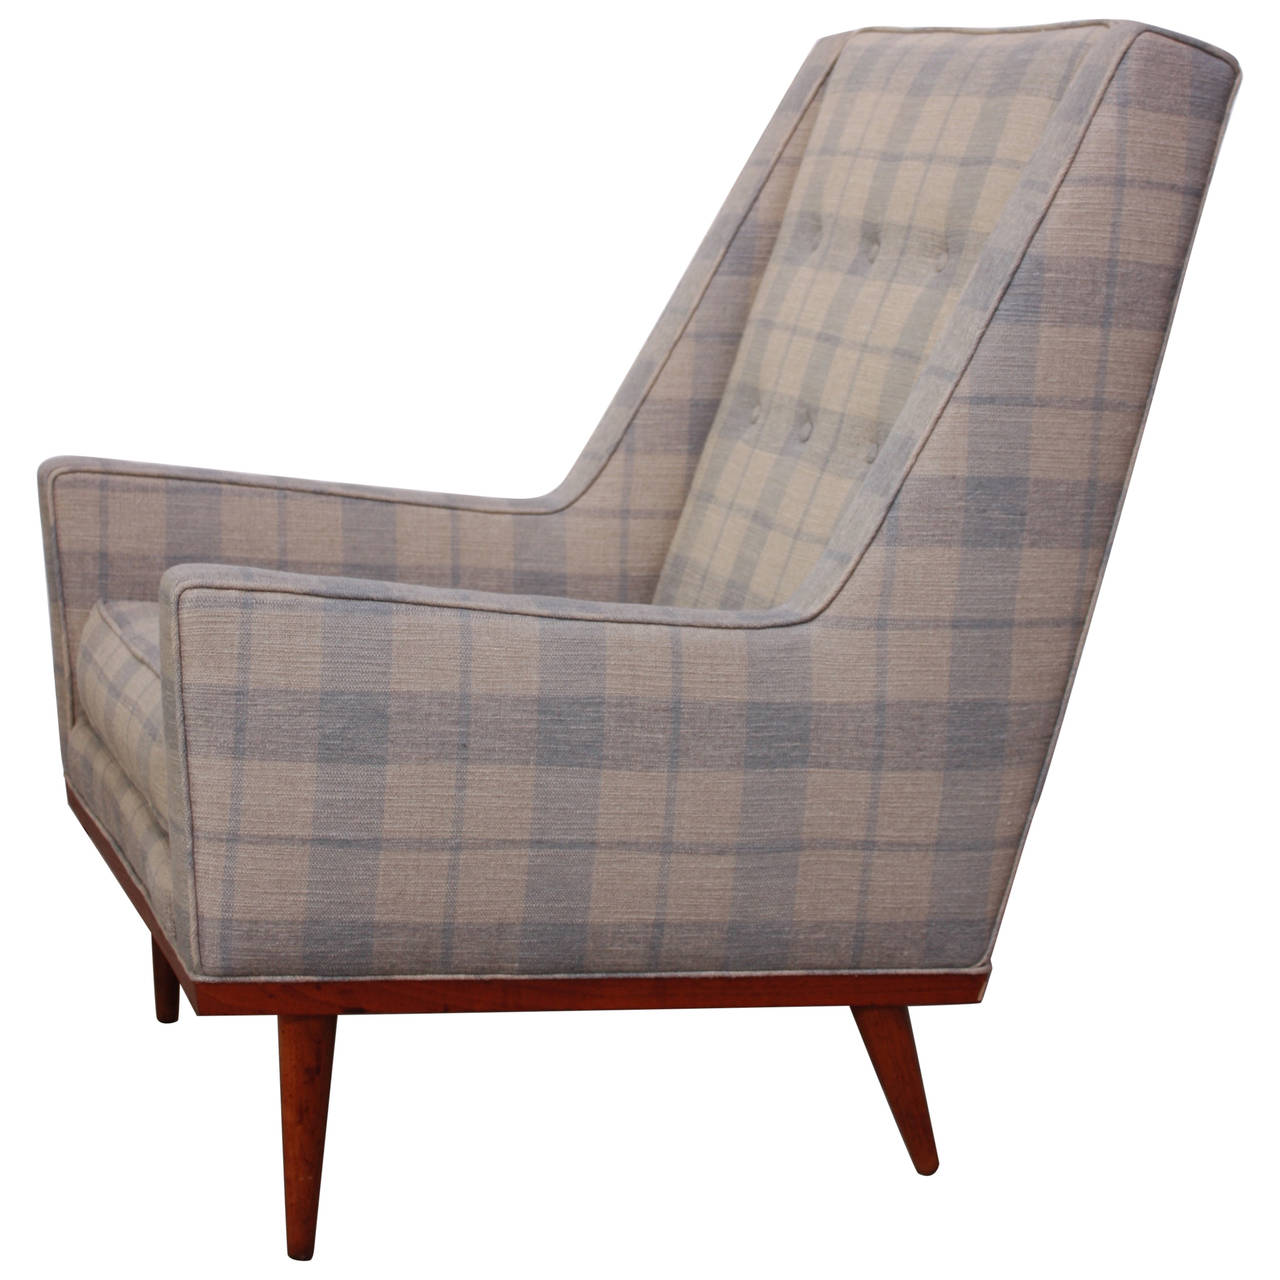 King Chairs Milo Baughman For James Inc King Chair Jarontiques